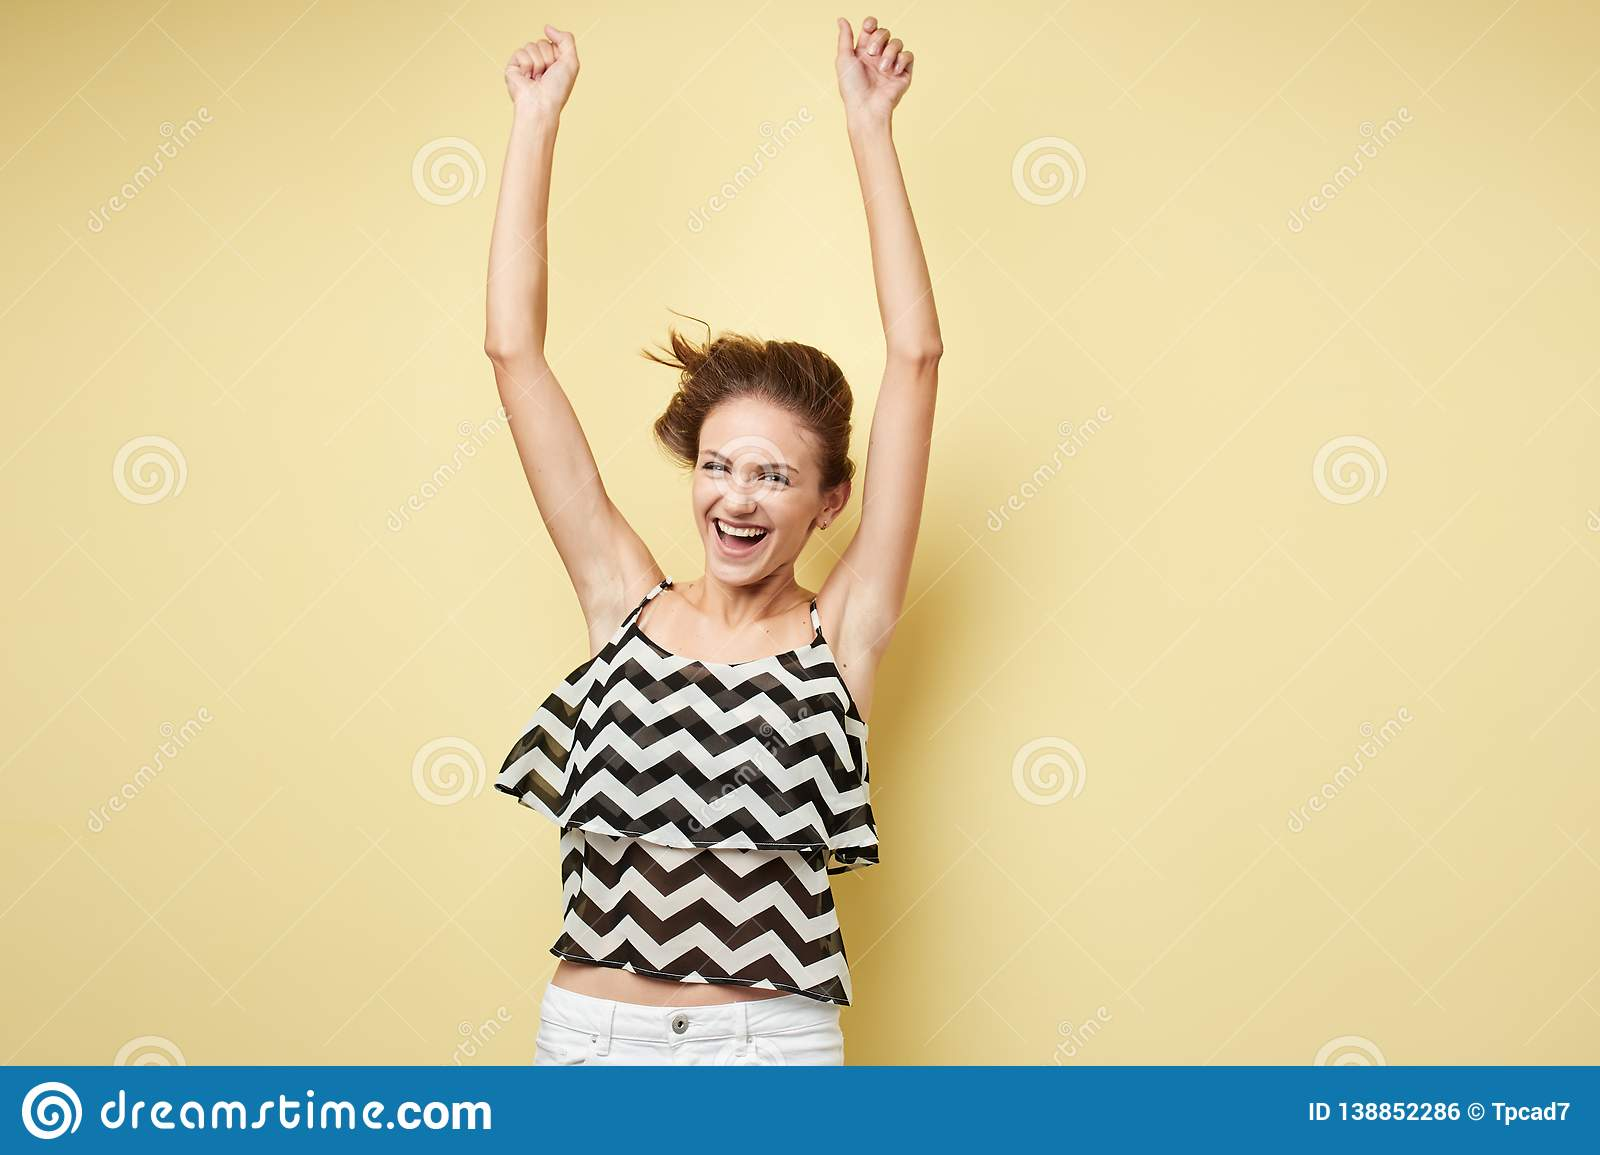 Ecstatic girl dressed in a striped top and white jeans happily shouts on the yellow background in the studio